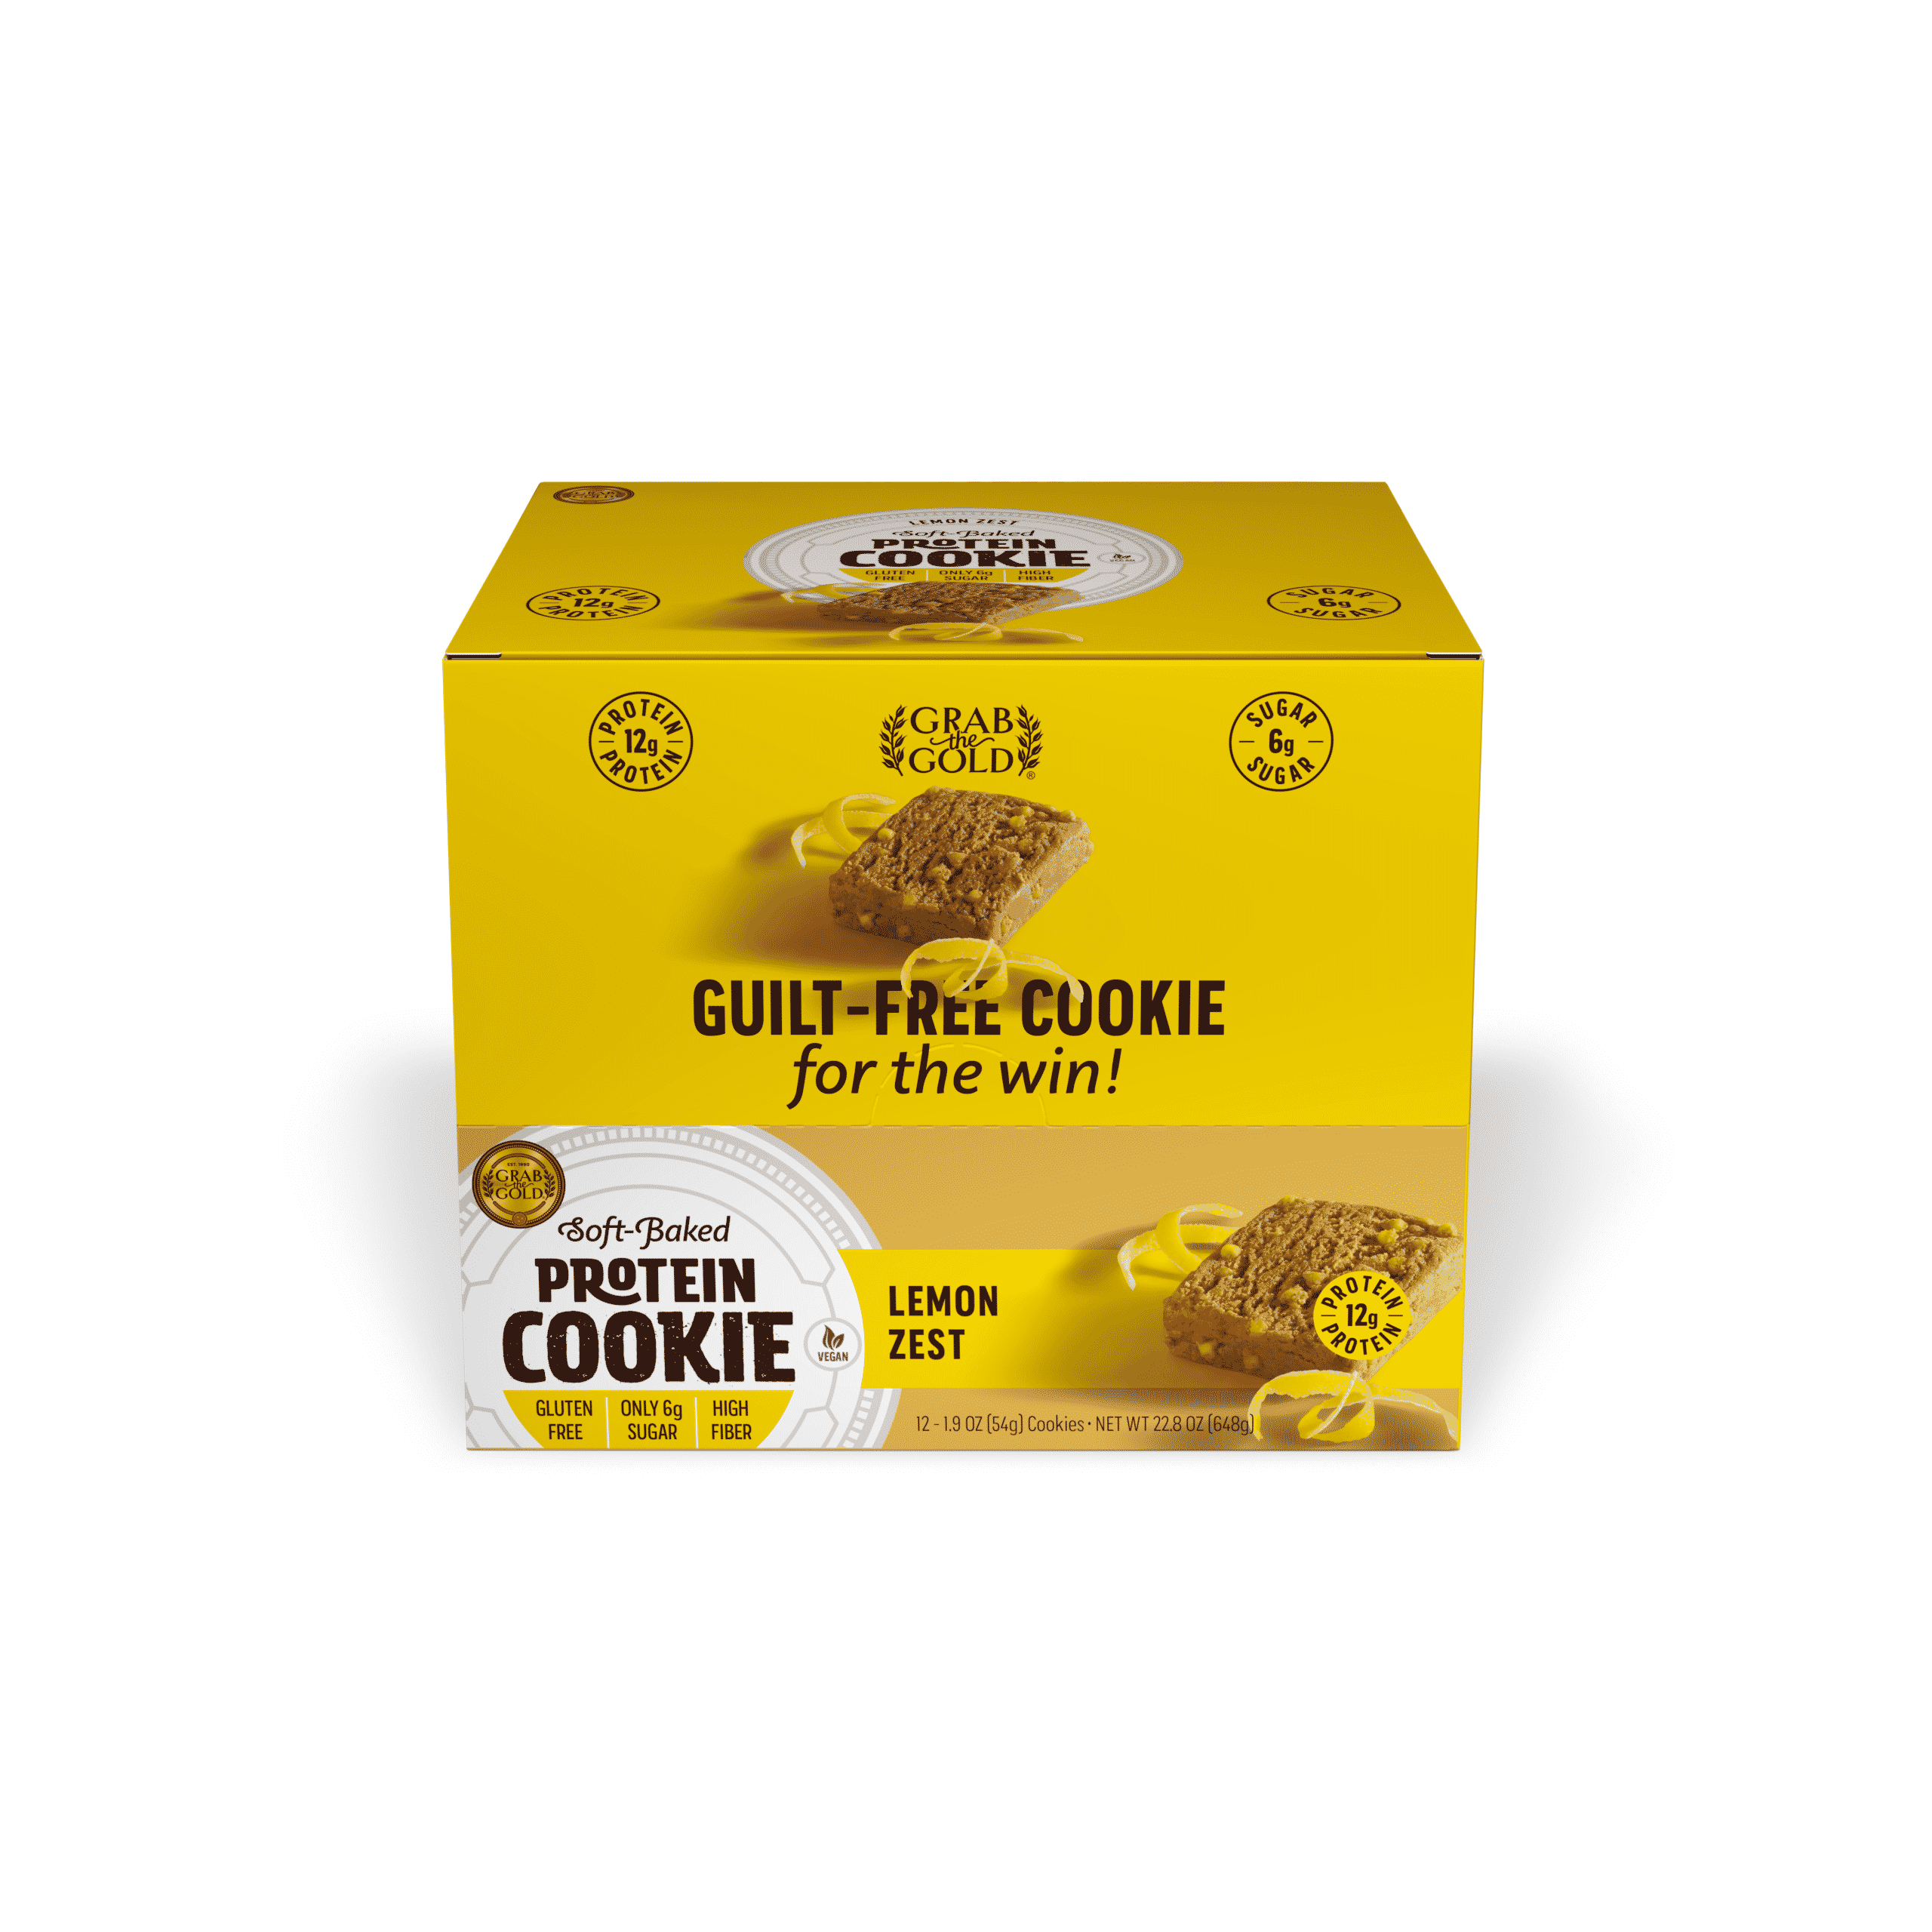 Grab The Gold Protein Cookie POS LMZ Closed Box 08.20